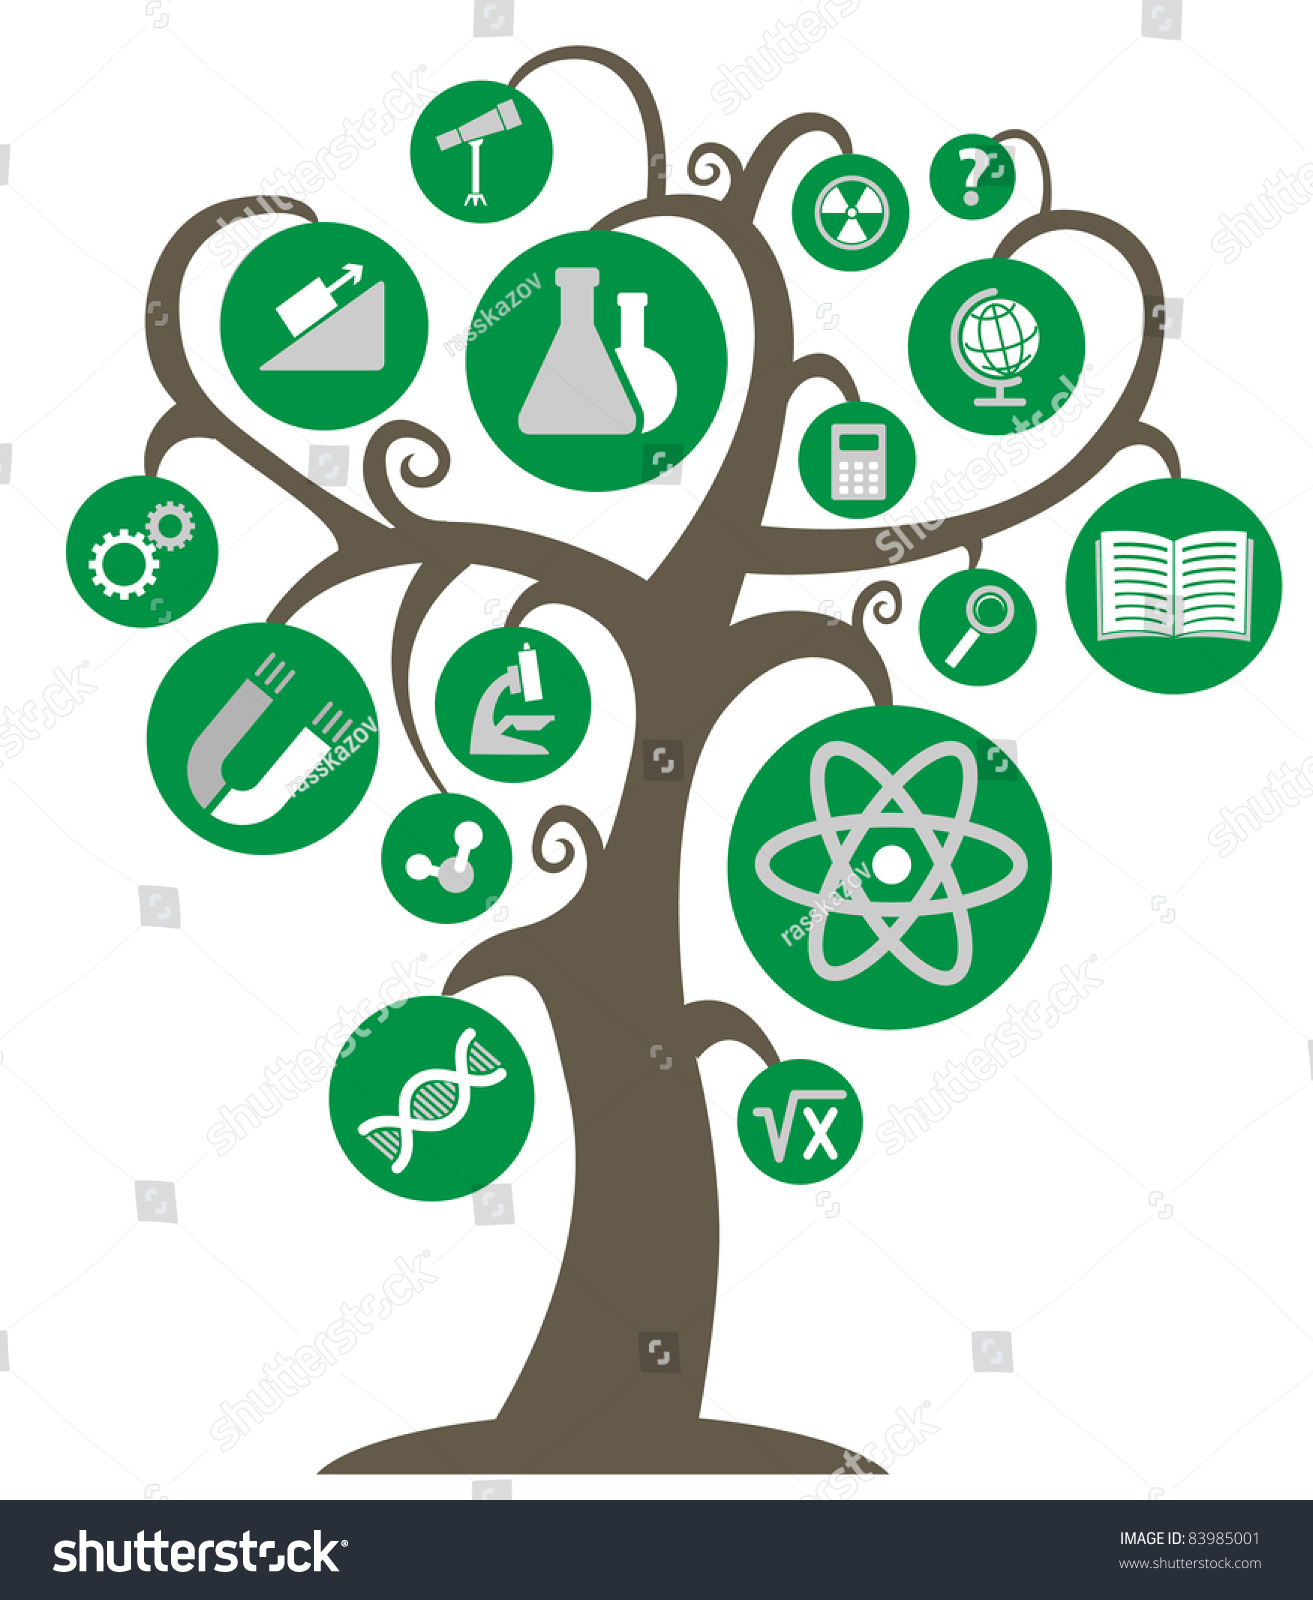 Tree Knowledge Symbols Science Education Branches Stock ...